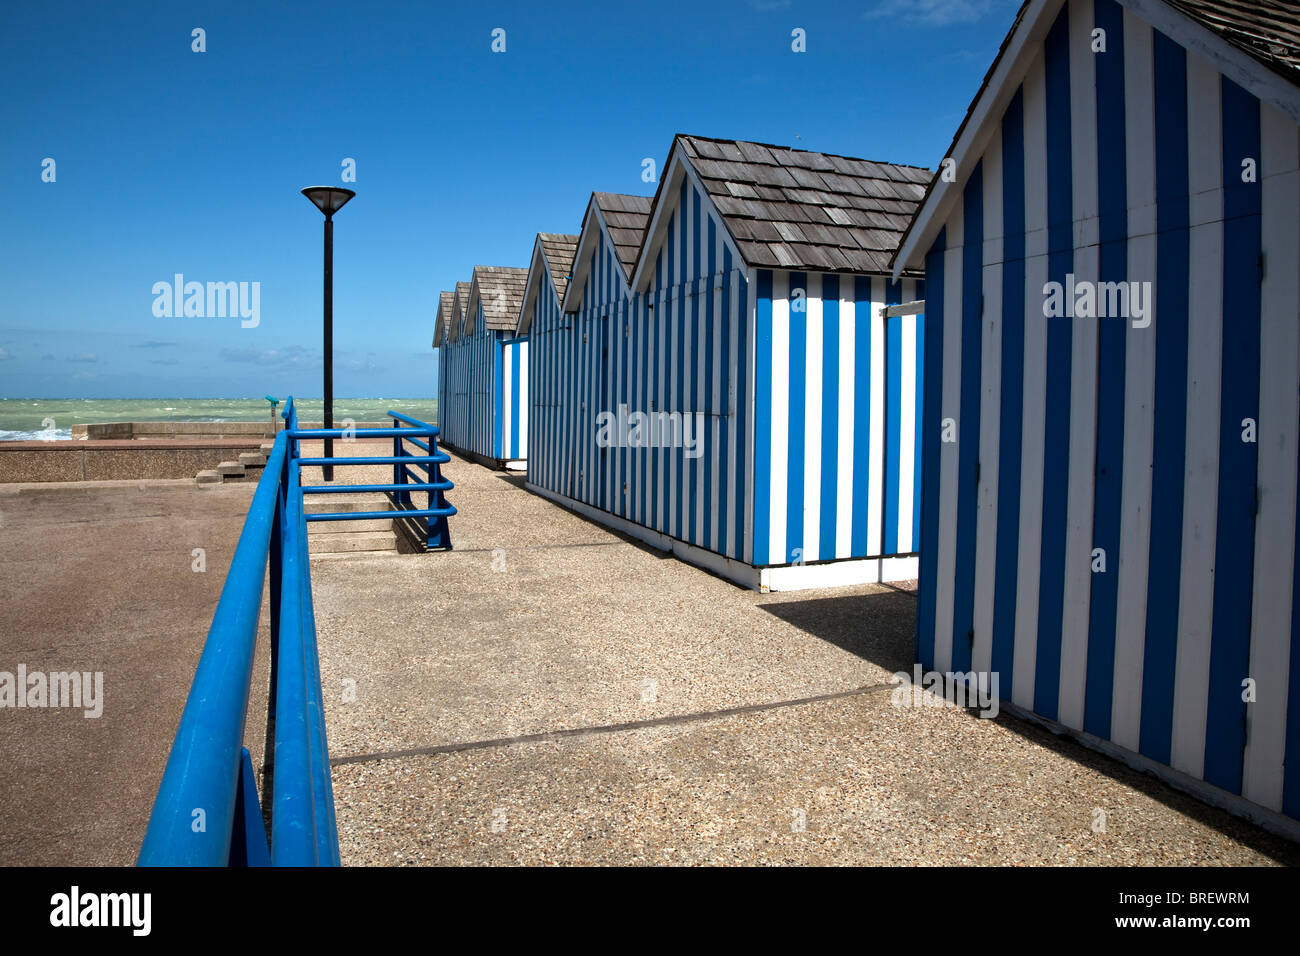 Beach huts at Saint-Valery-en-Caux, Upper Normandy, France - Stock Image